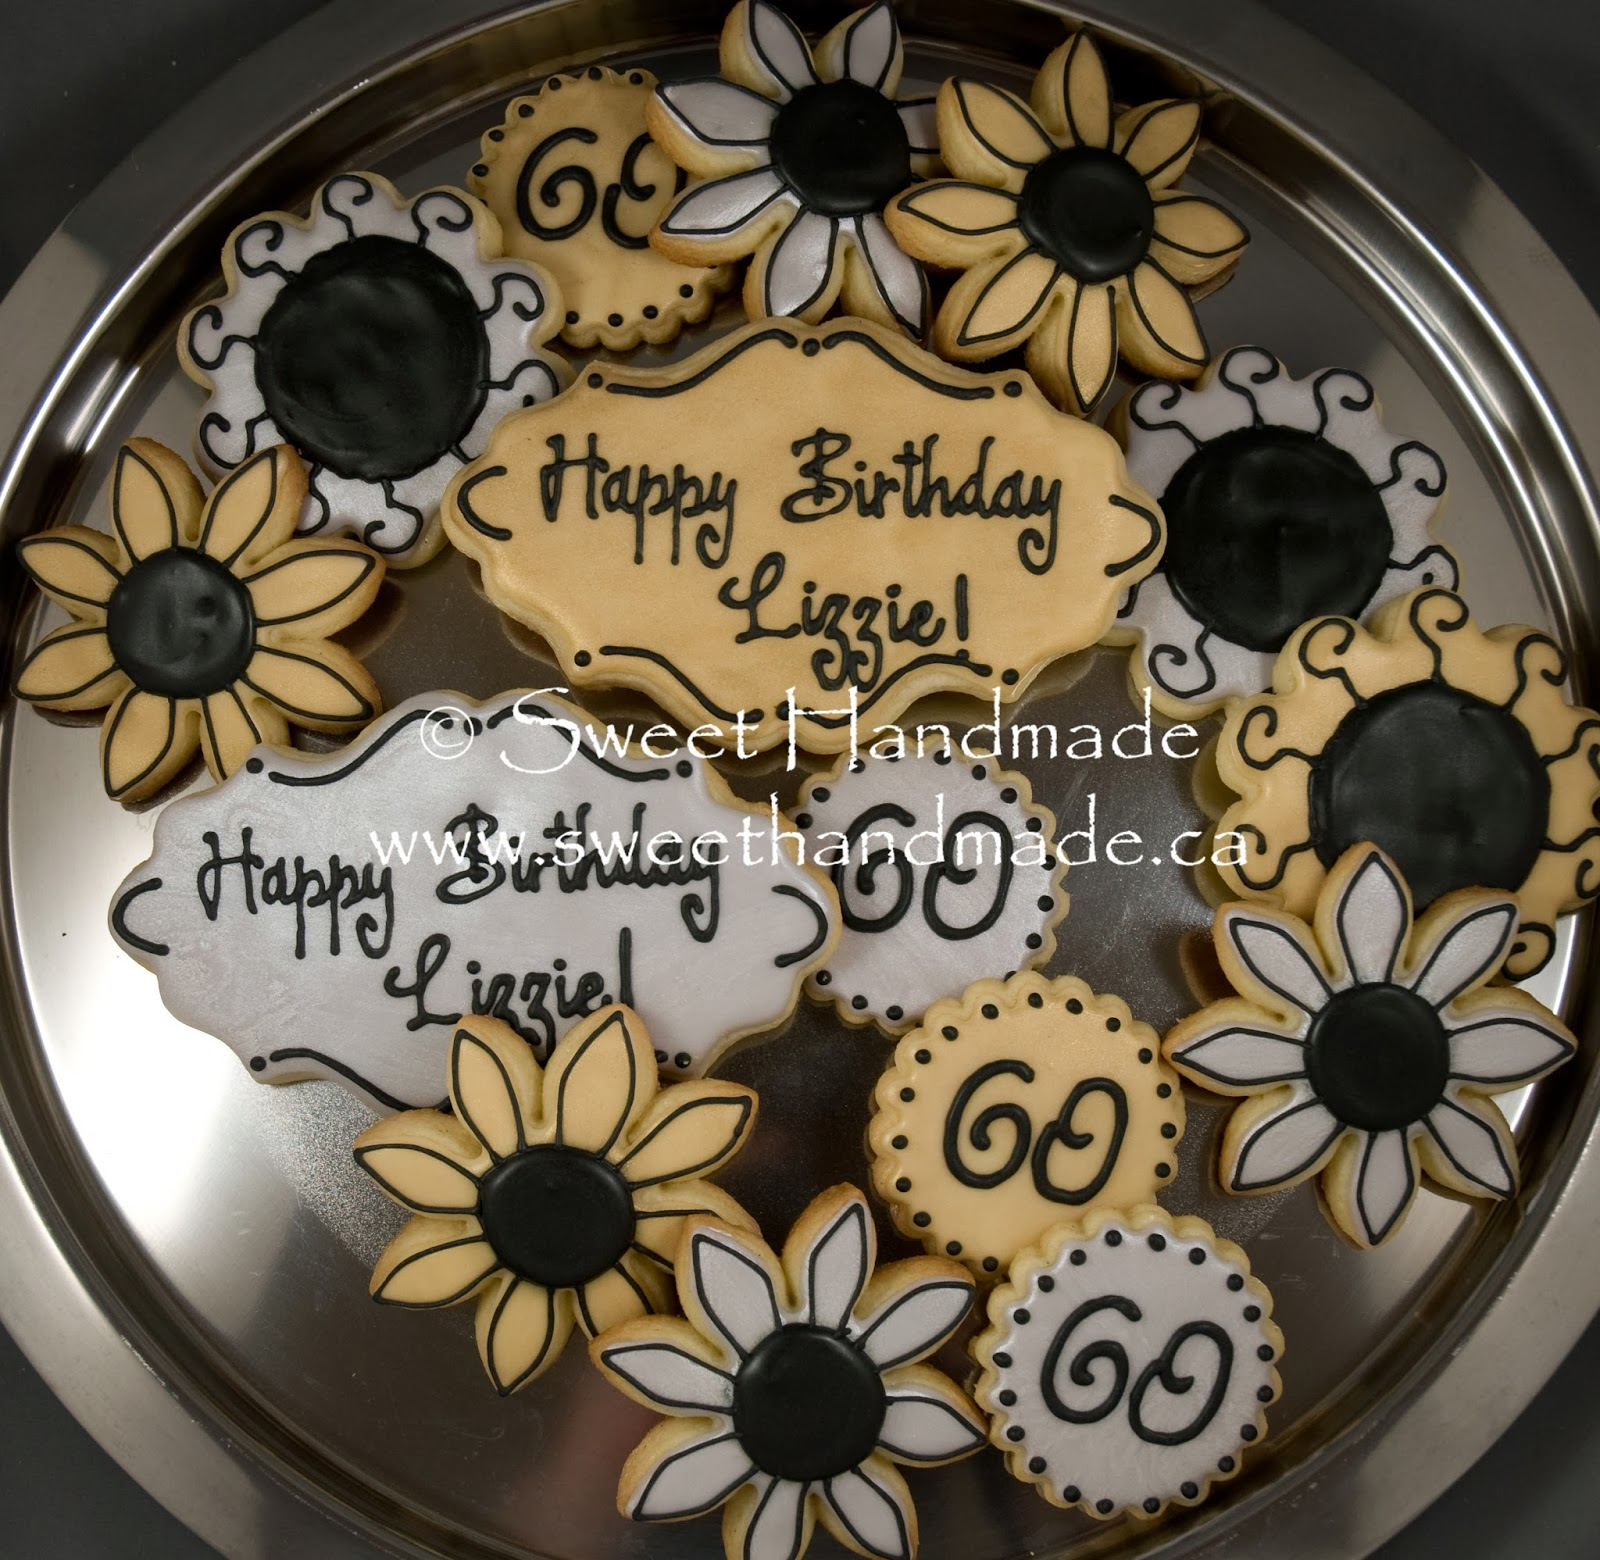 Sweet Handmade Cookies: 60th Birthday In Silver And Gold